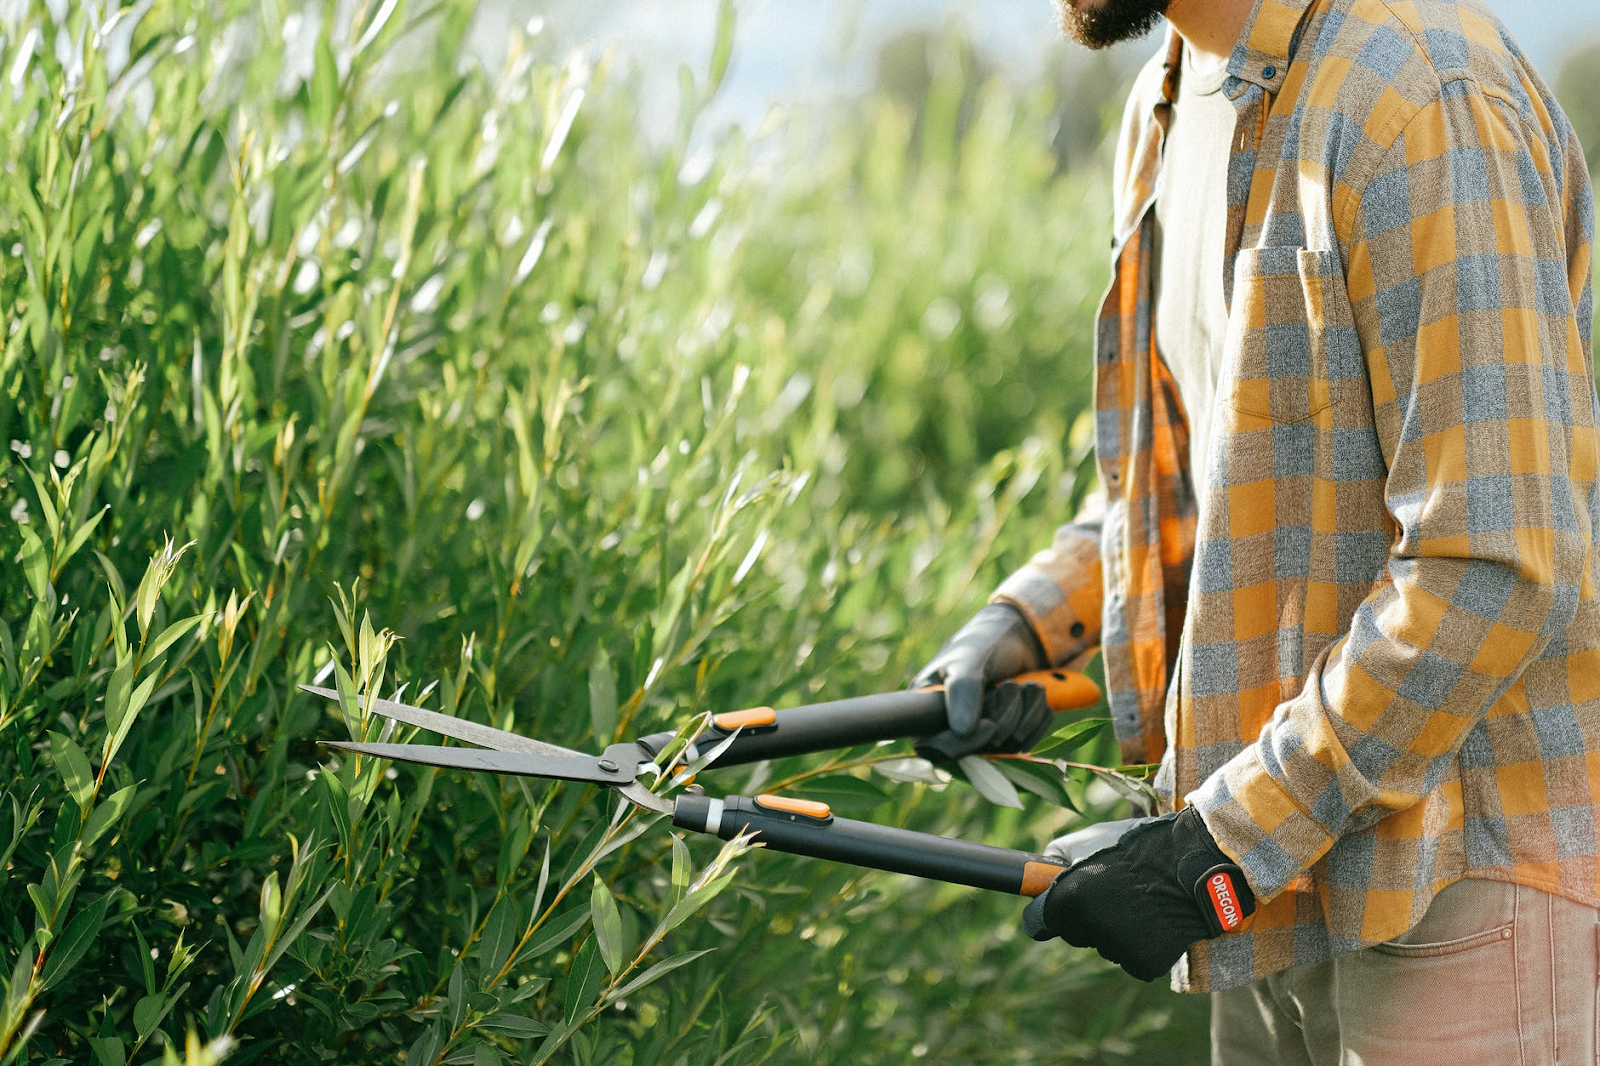 Brighton Gardening Services Announces Exclusive Subscription Lawn Care Services in the Brighton, UK Area